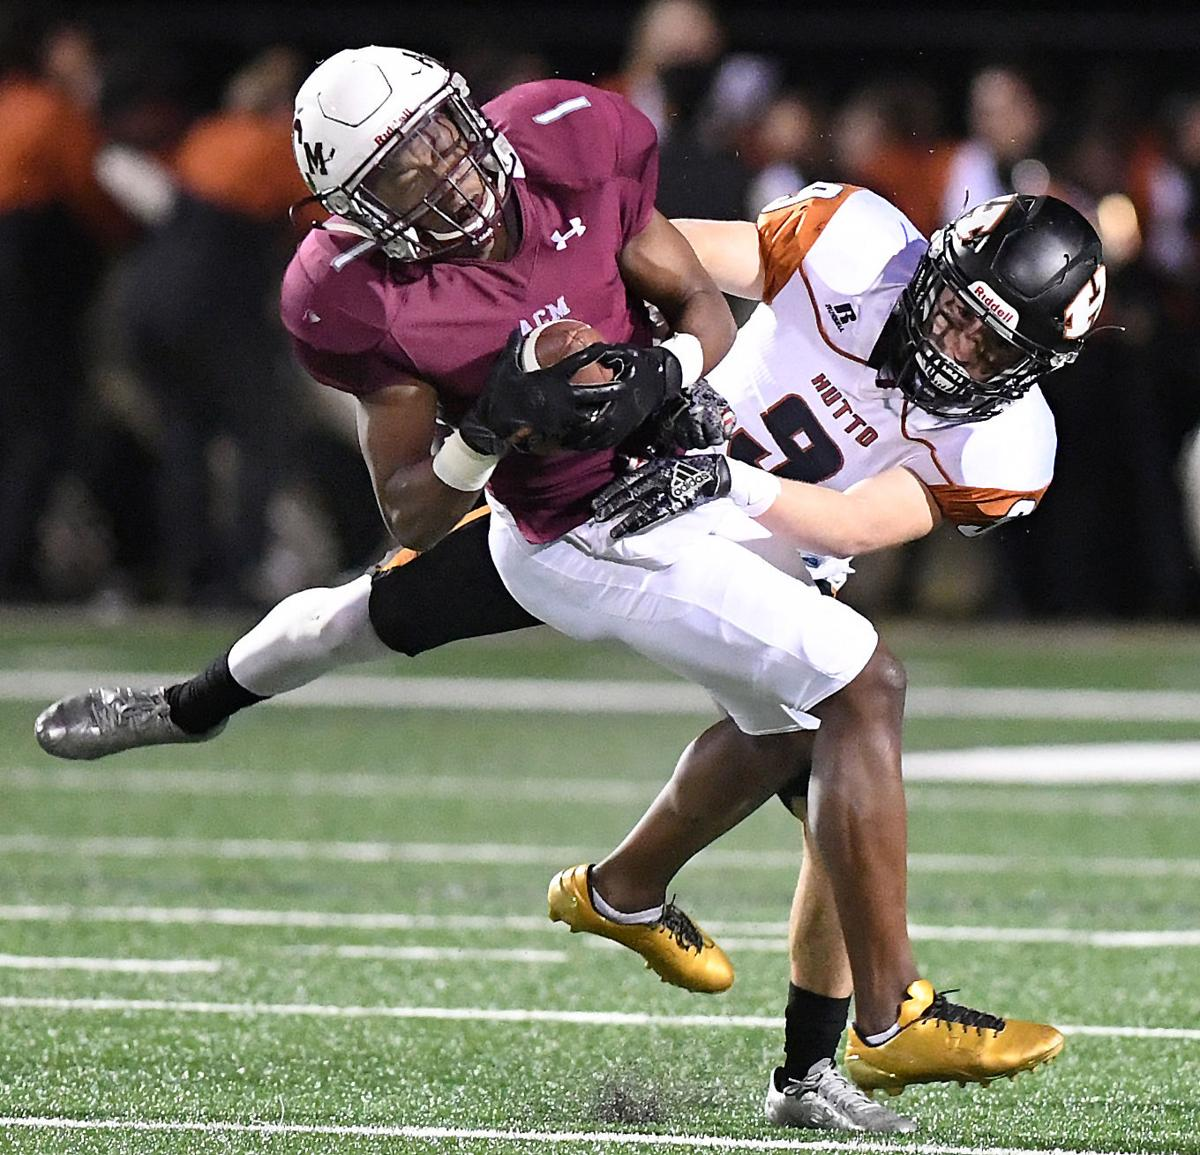 A&M Consolidated rallies in second half but can't catch Hutto (copy)